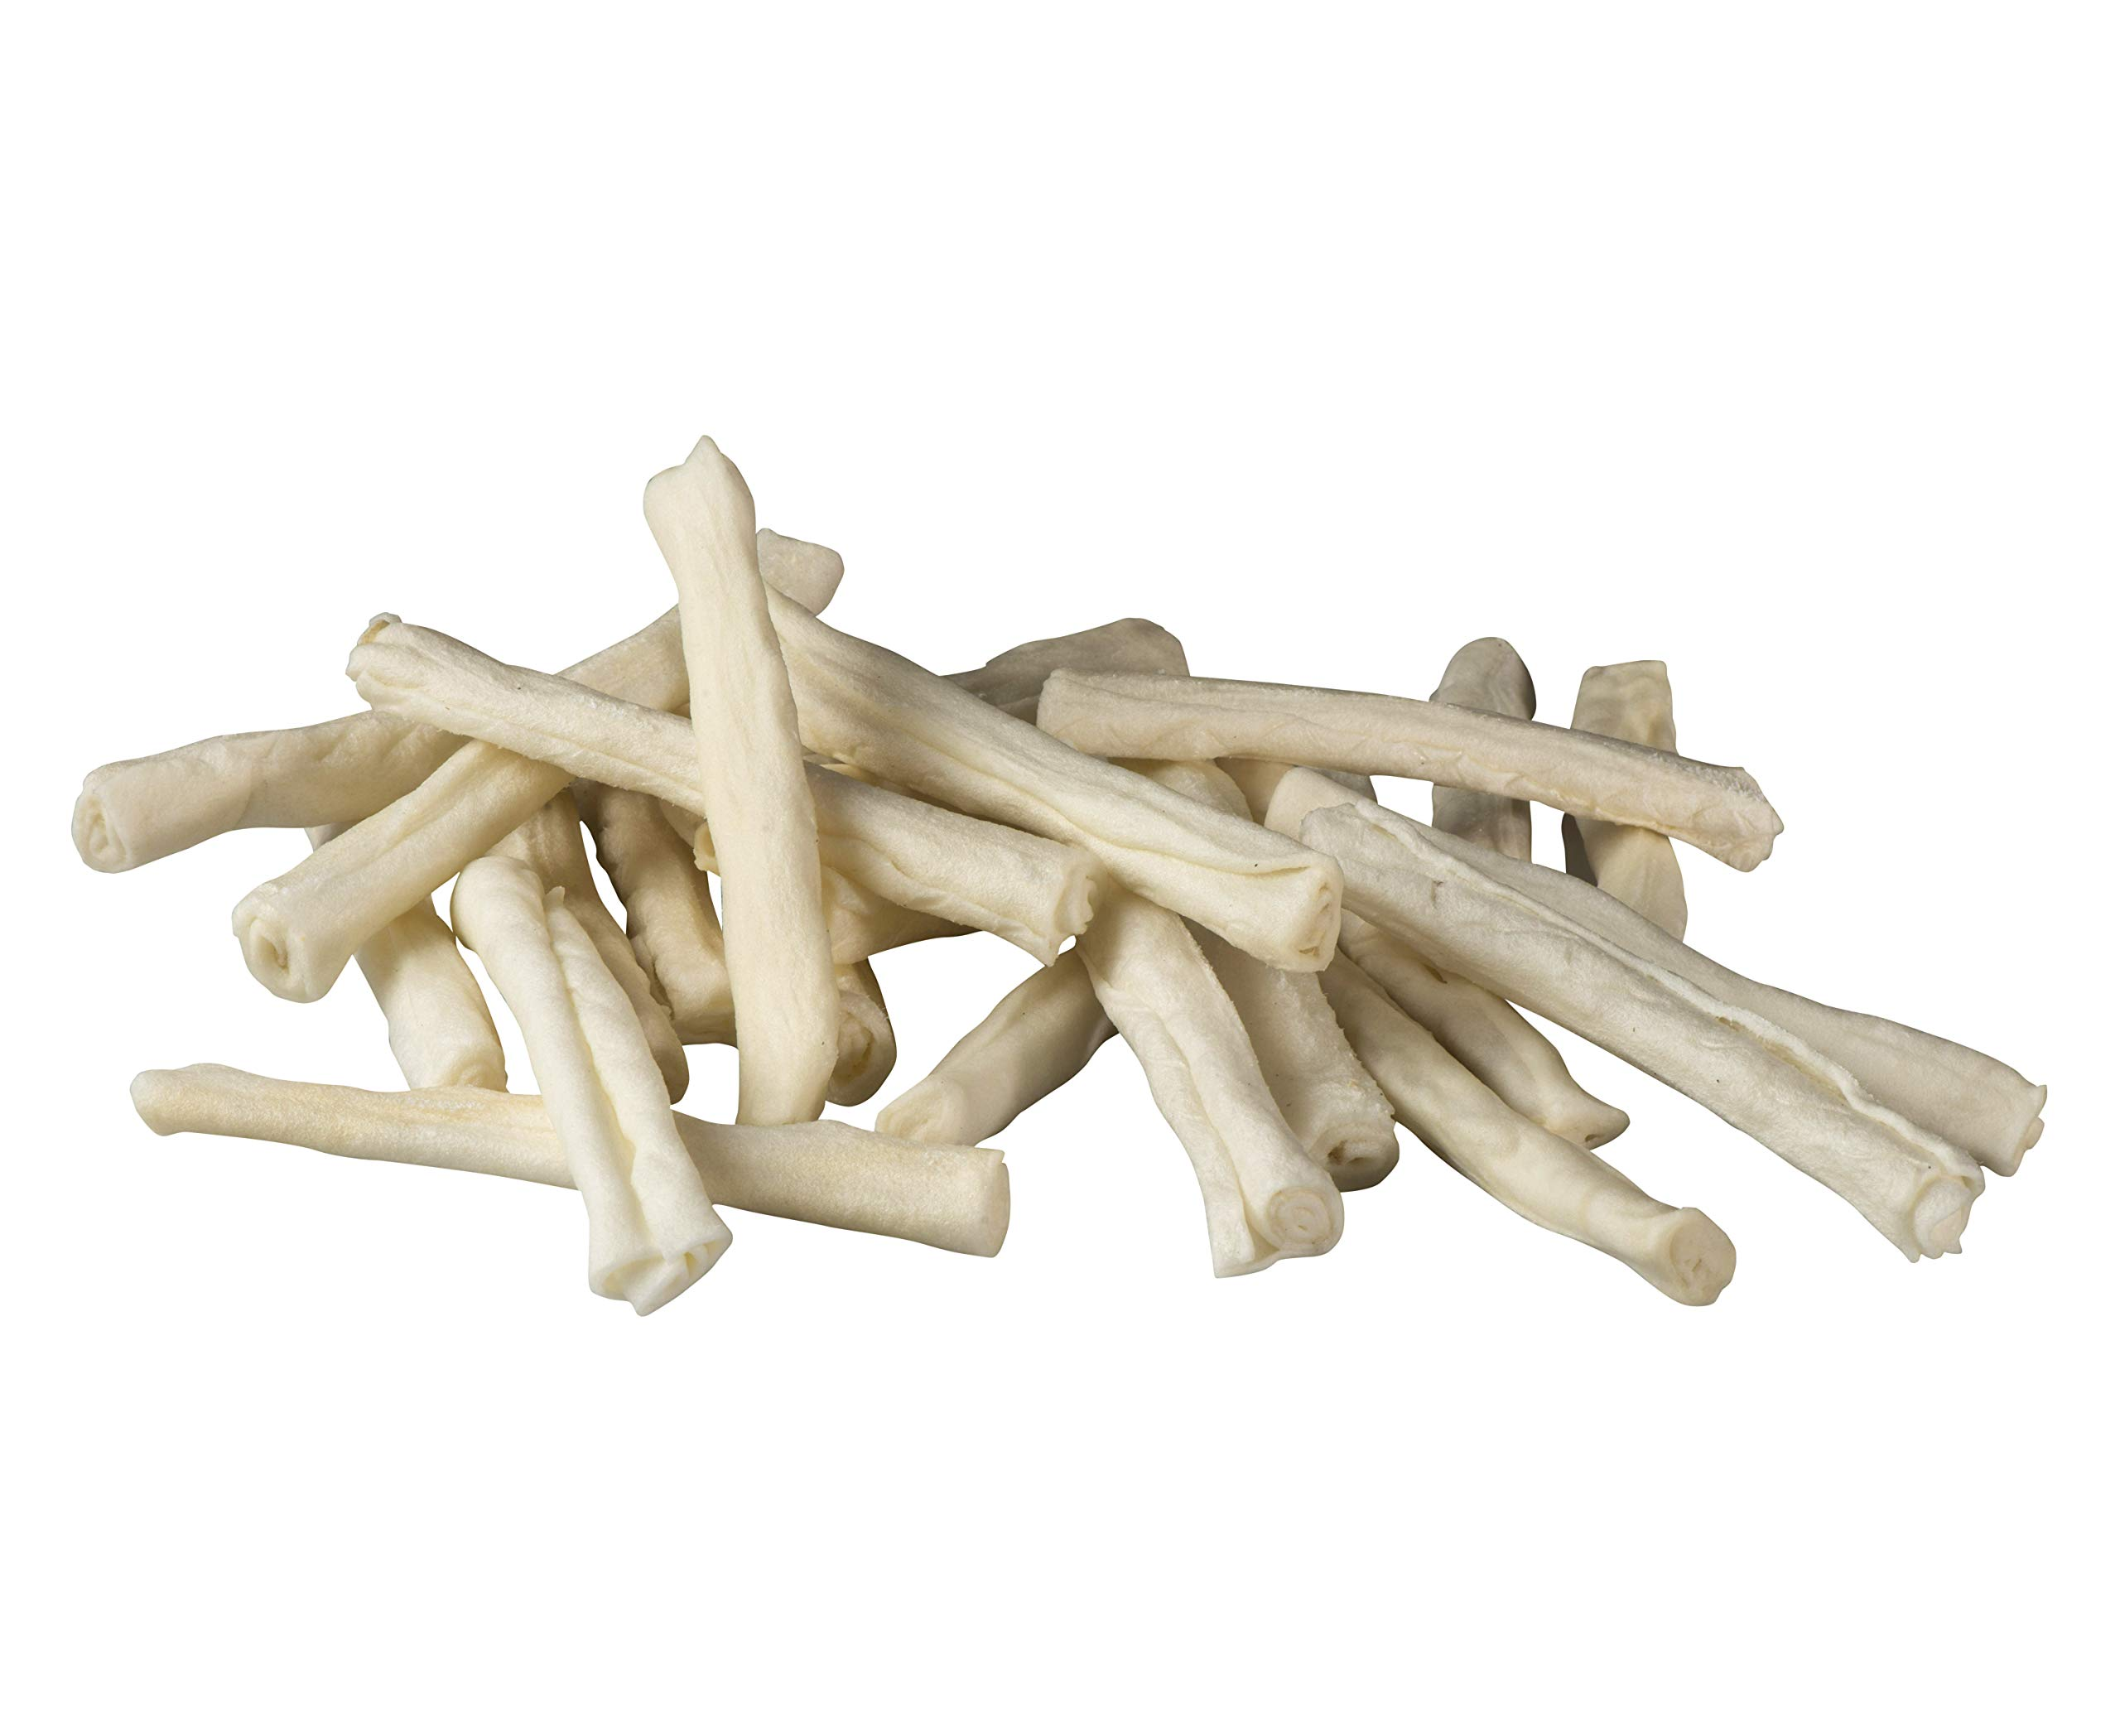 TheLittleThingsThatCount Natural Rawhide Retriever Rolls Chews Small to Medium Dogs Re-sealable Bag - 16/24pcs (24pc)